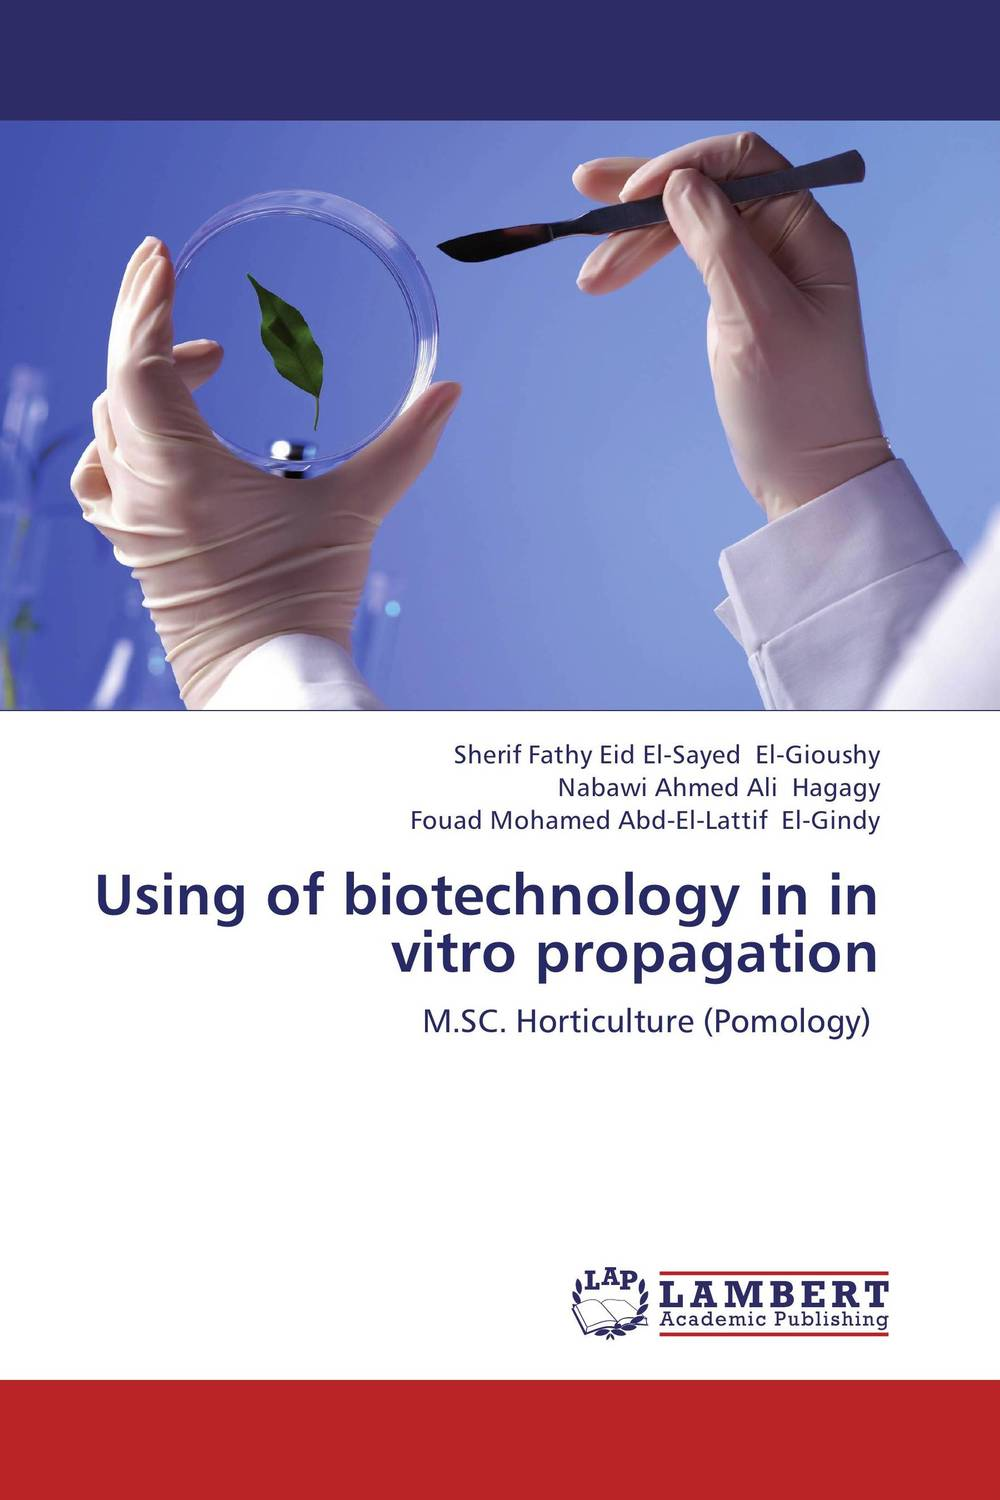 Using of biotechnology in in vitro propagation somatic hybridization as a primary cause of malignization